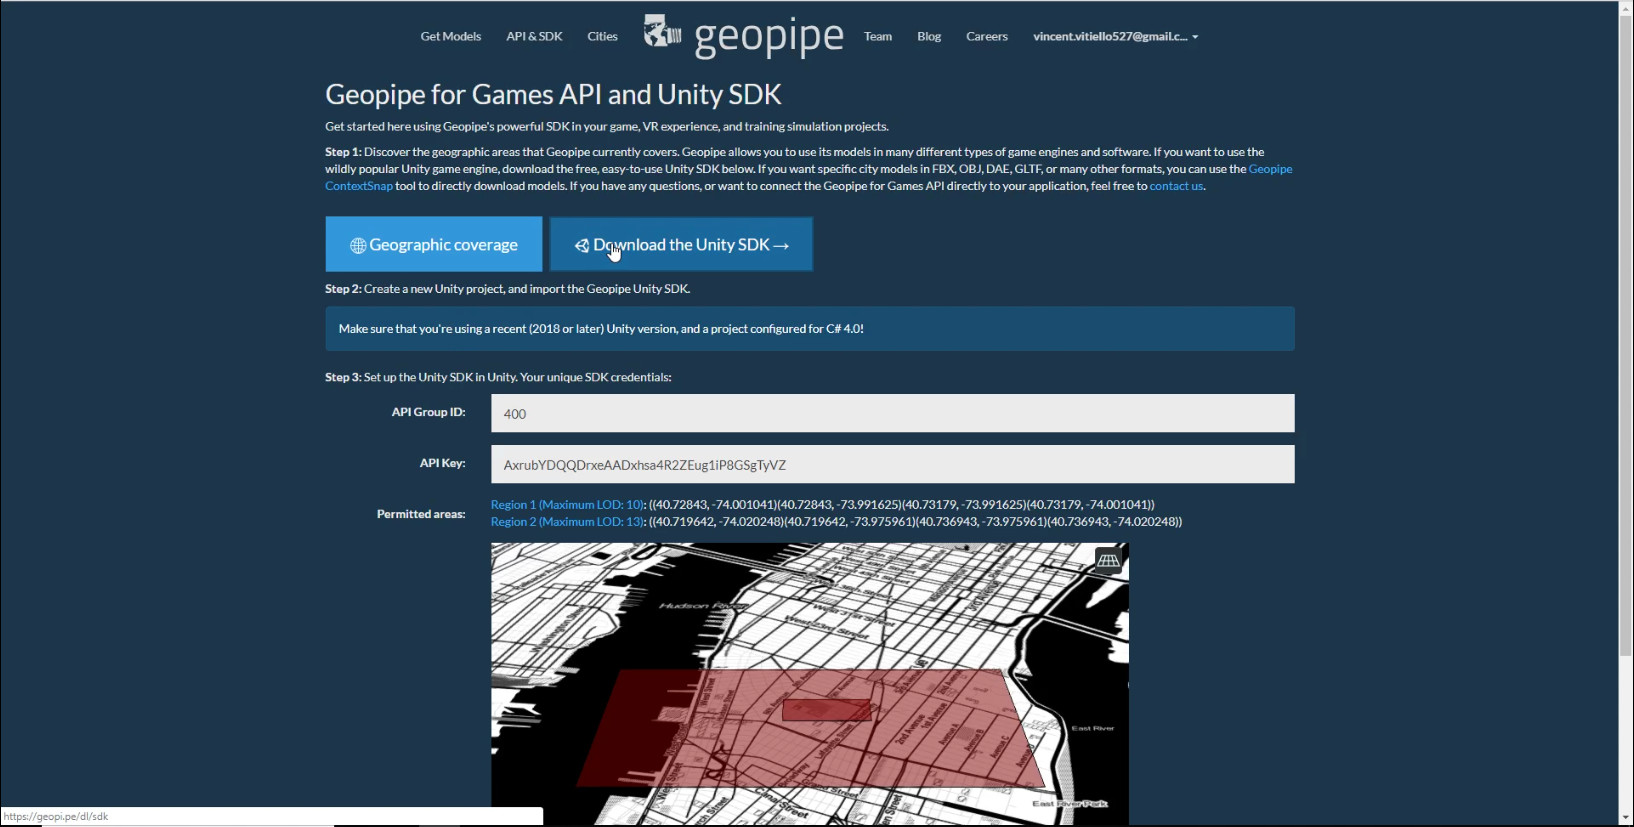 Geopipe's Get SDK page, visible to logged-in users